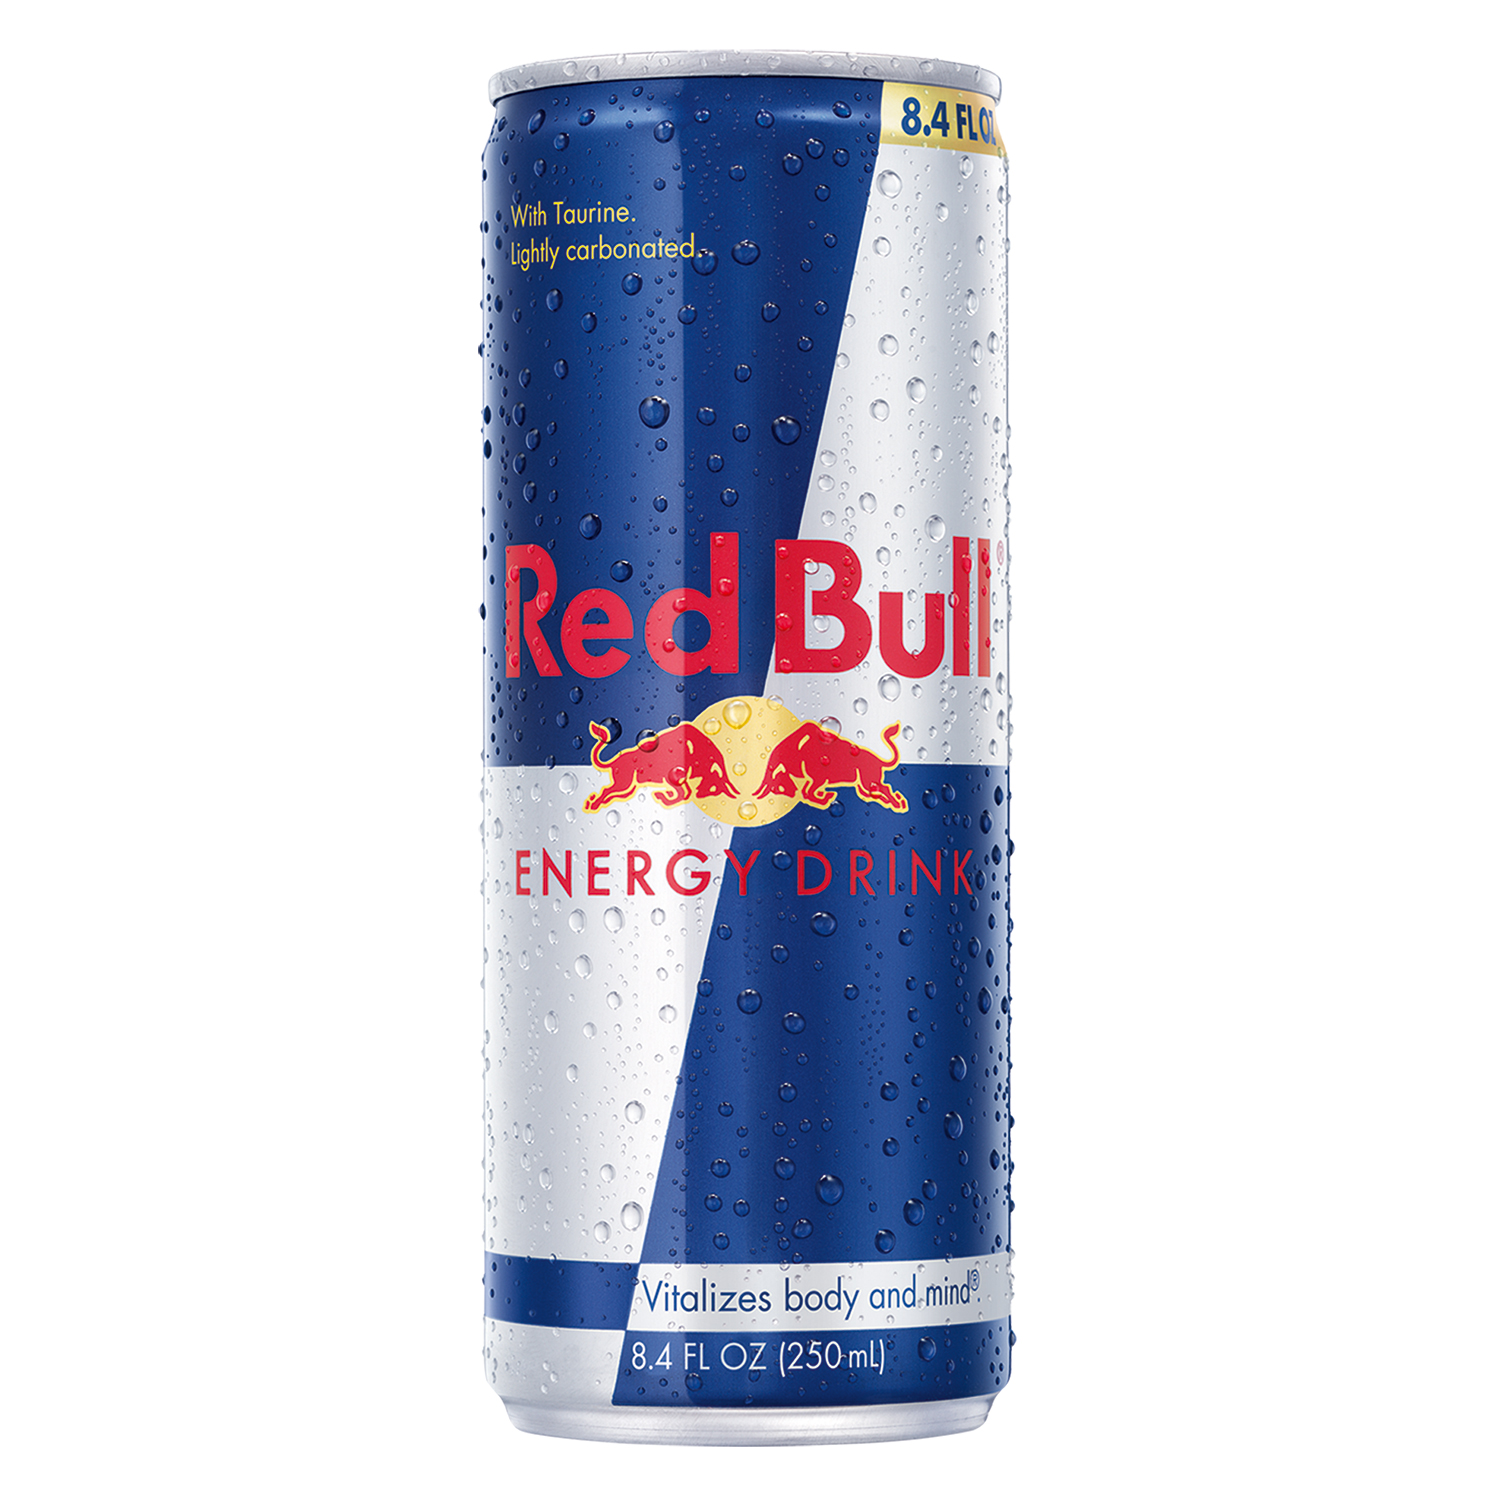 Red Bull Energy Drink, 8.4 Fl Oz Can